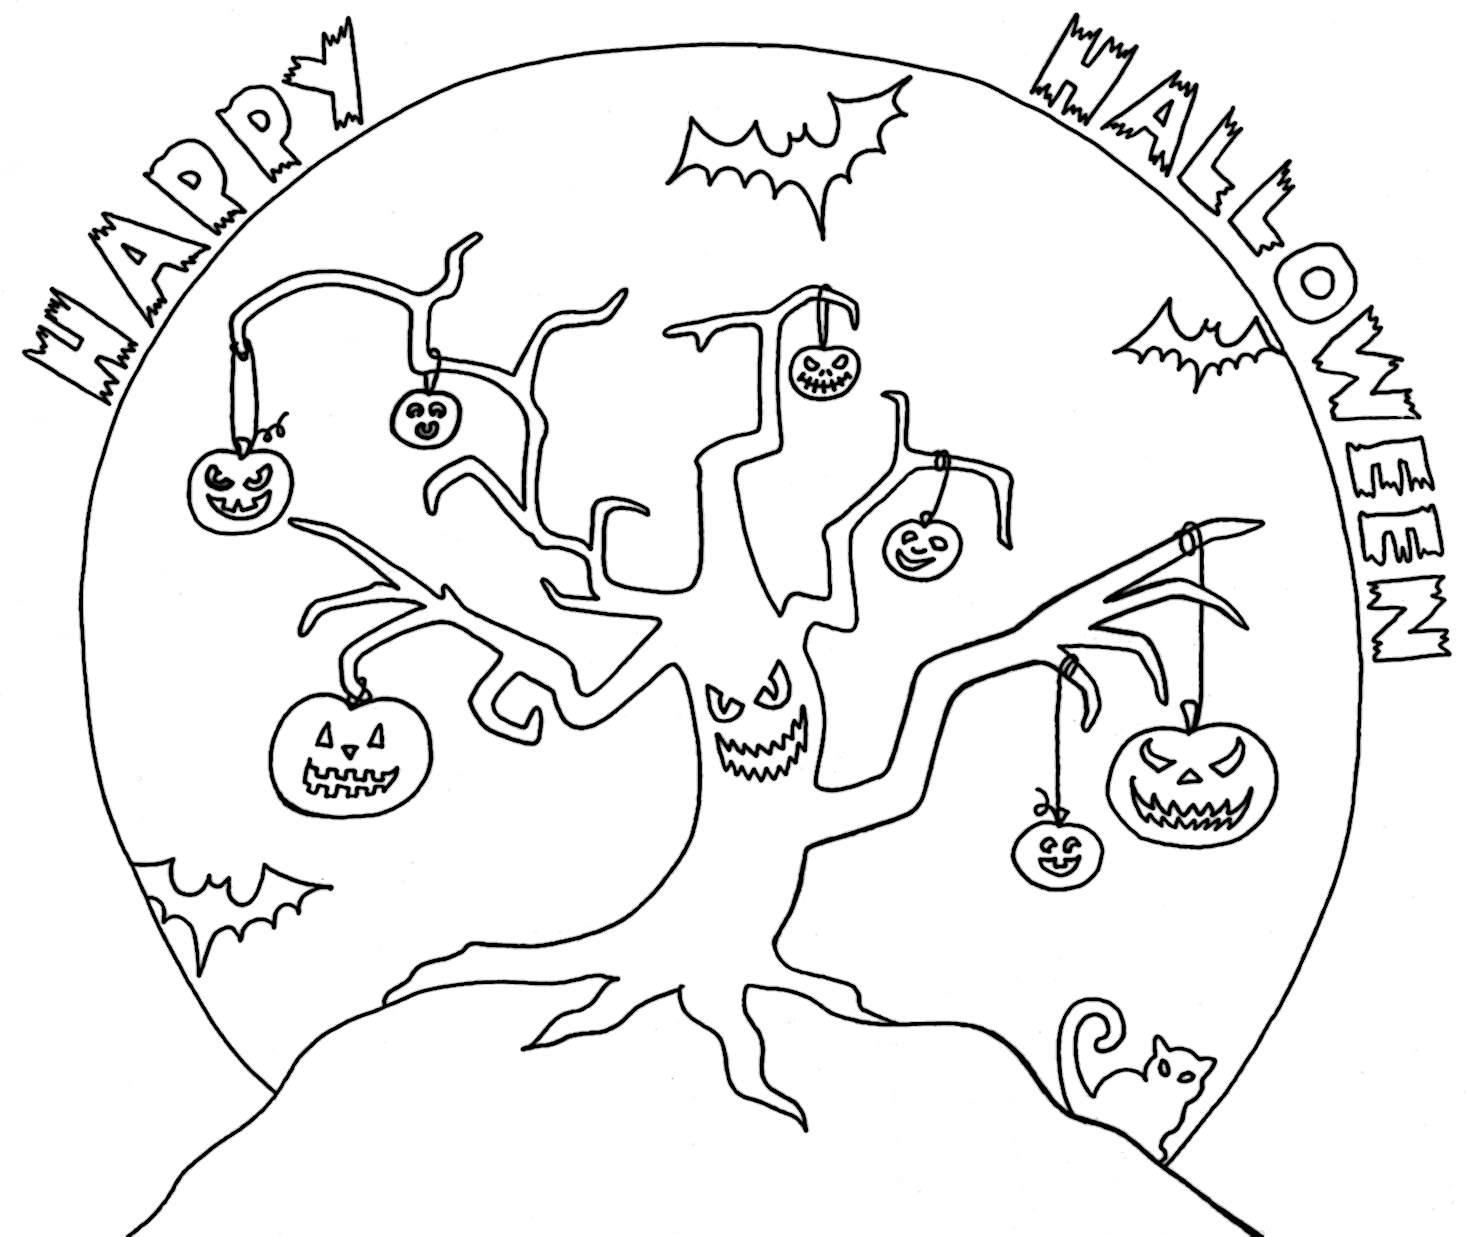 Halloween spooky tree coloring pages ~ Yucca Flats, N.M.: Wenchkin's Coloring Pages - Halloween Tree